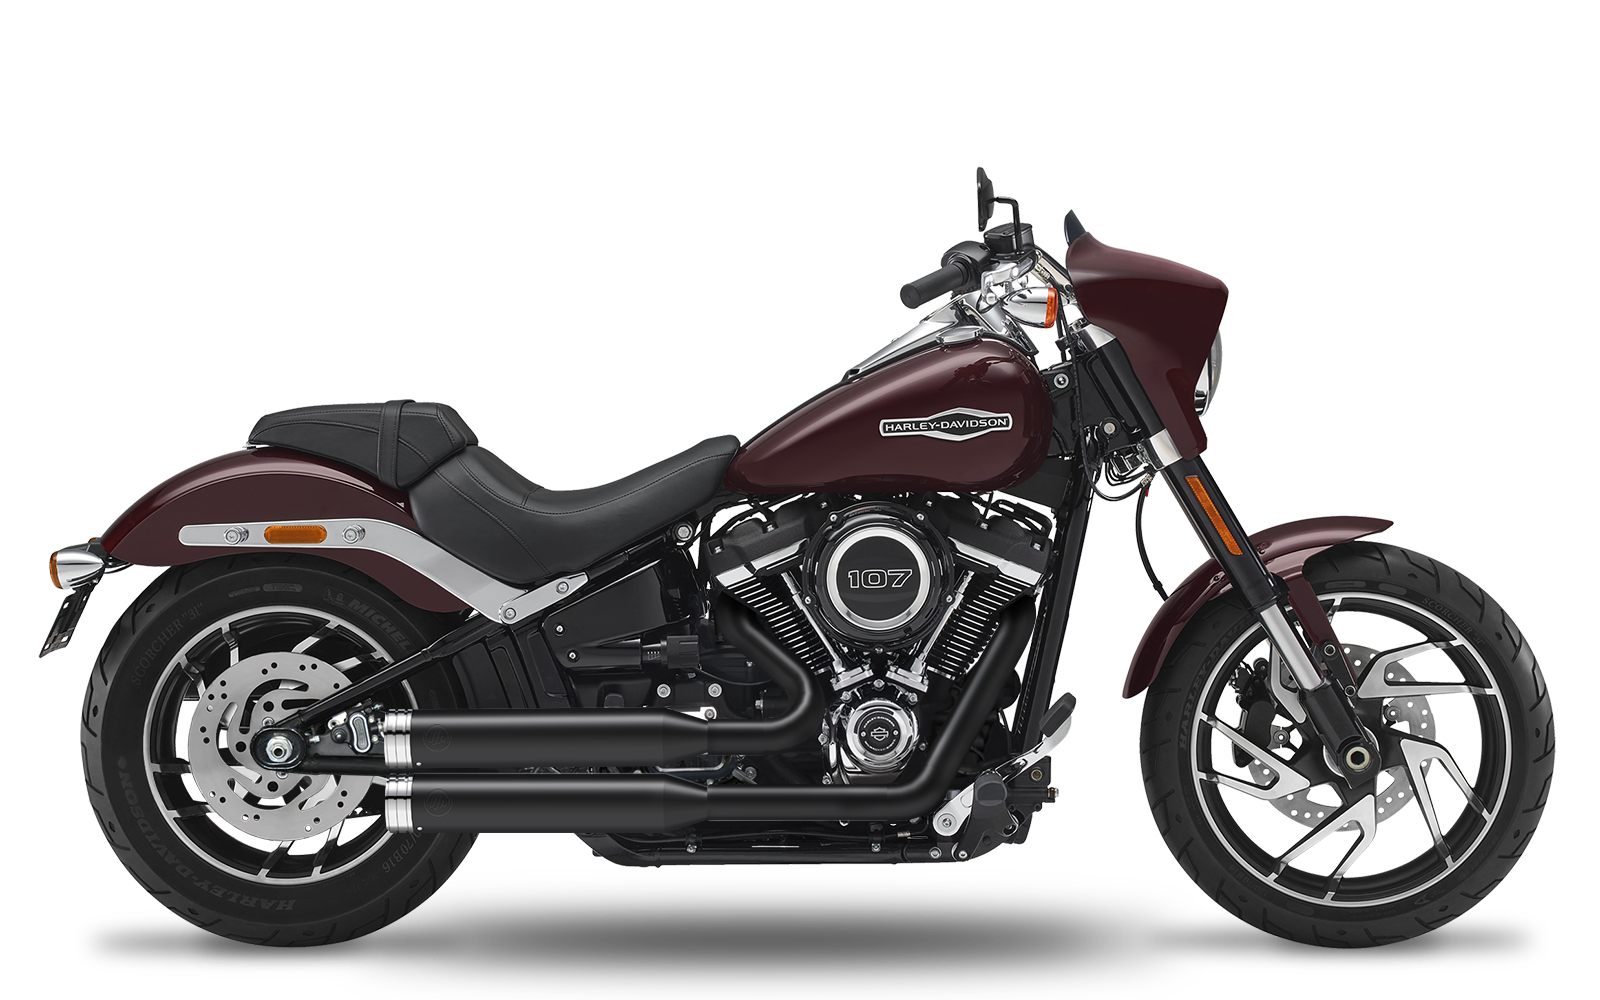 Softail - Sport Glide - ME107 - 2018-2020 - Complete systems